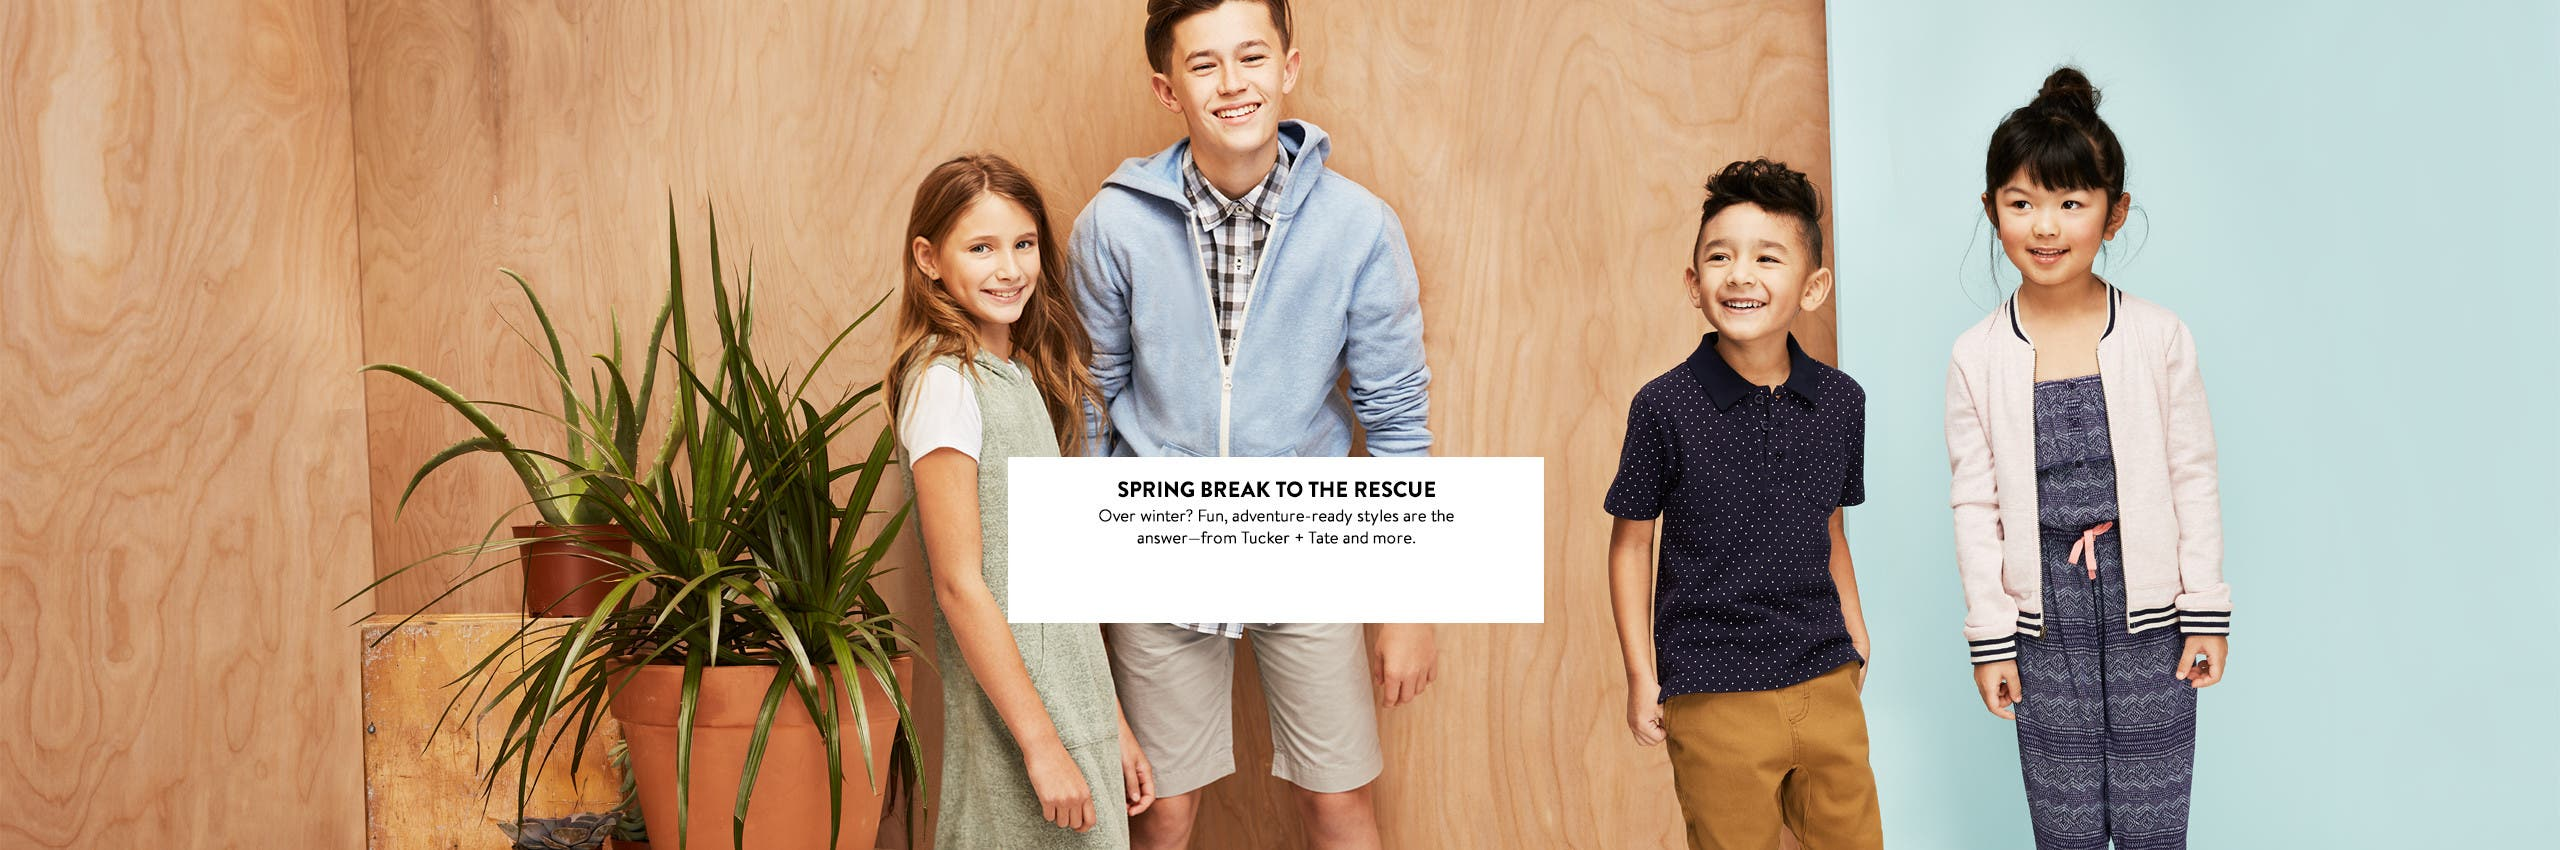 Kids' clothing for spring break and beyond.